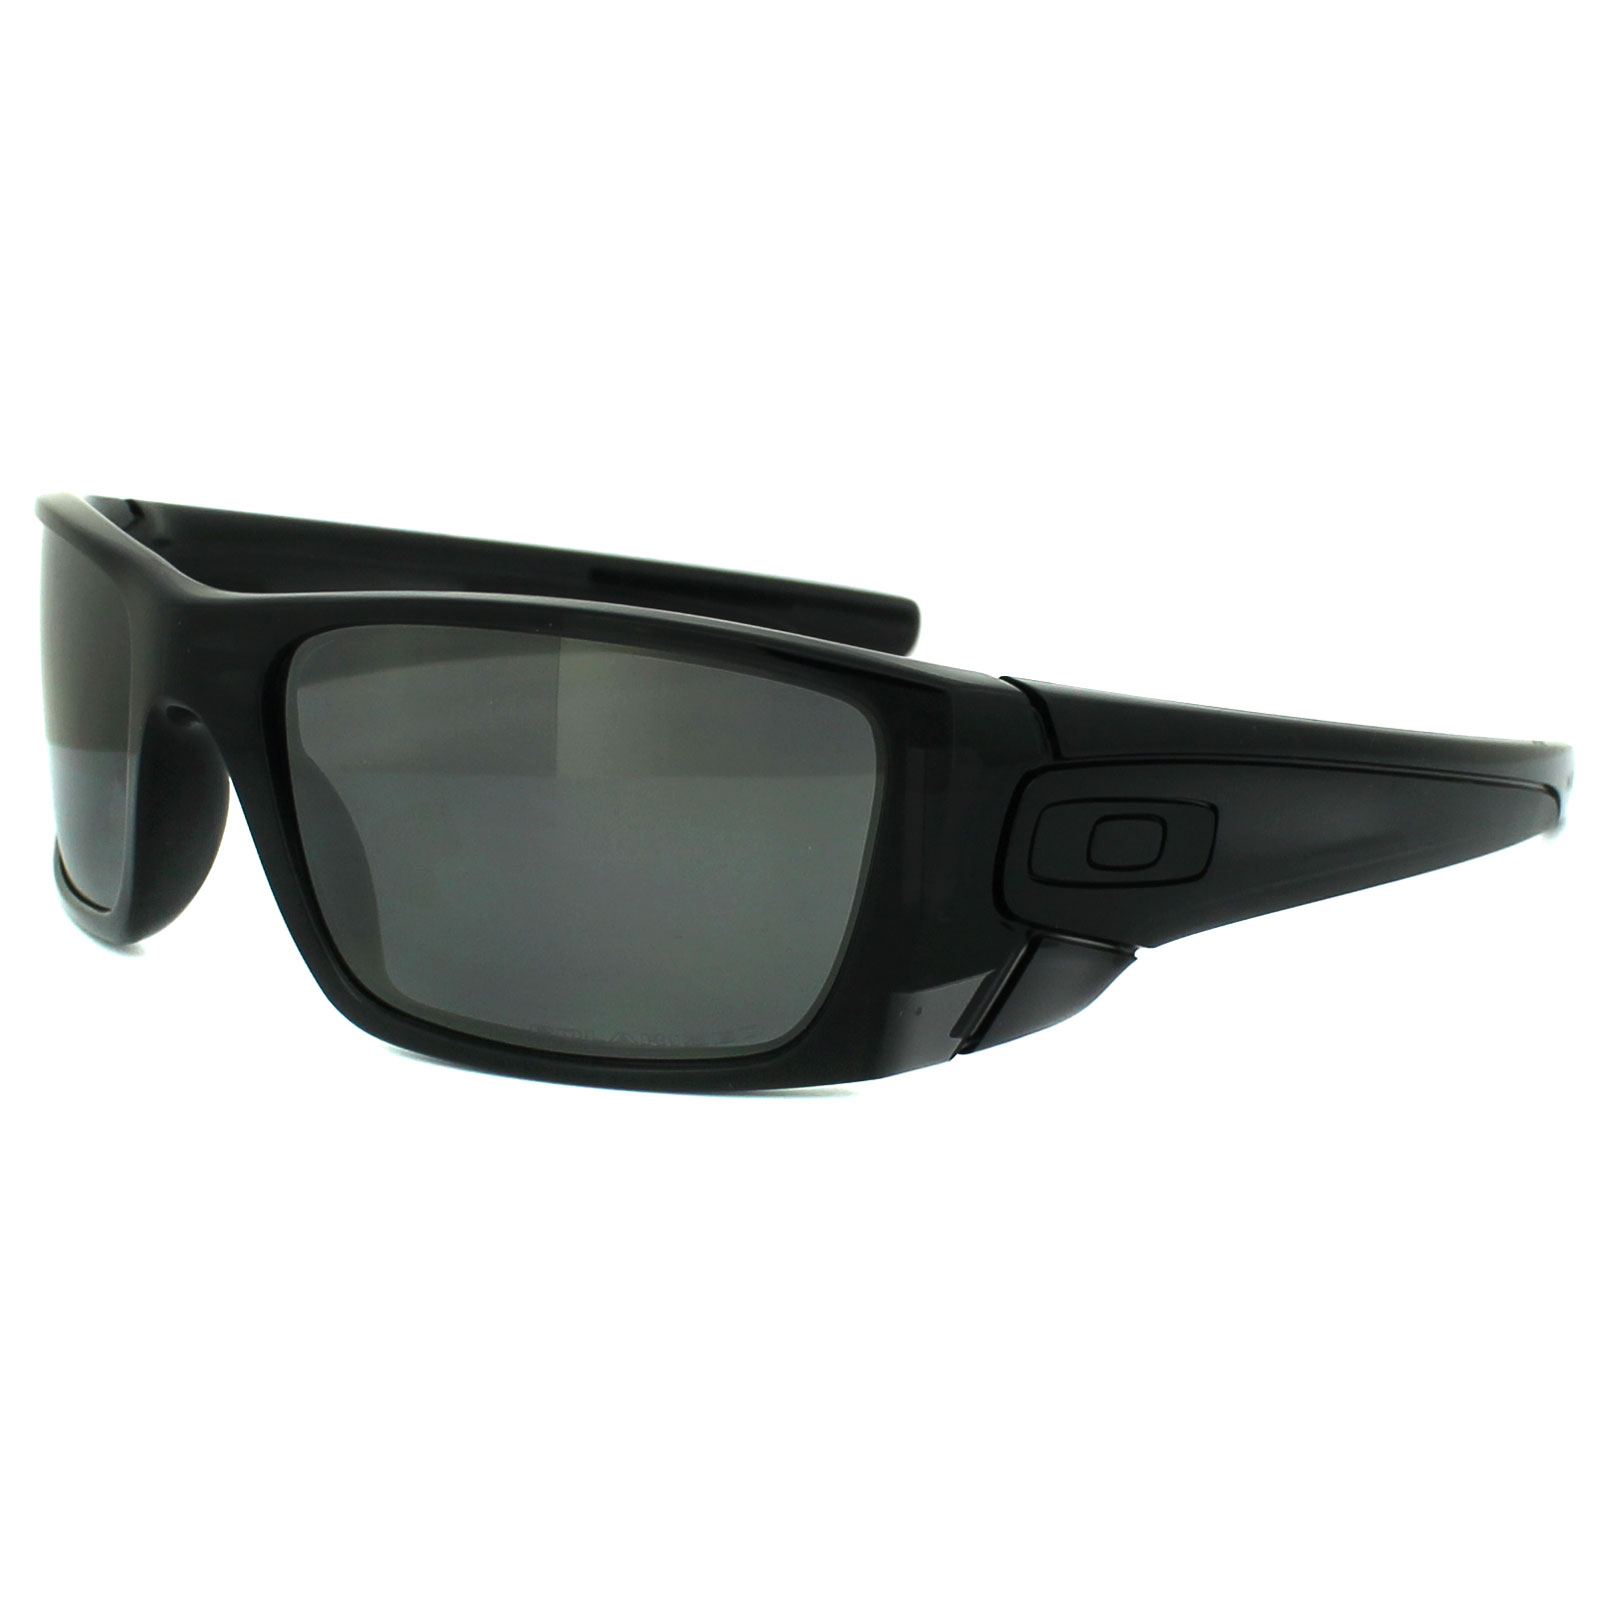 4d8ae75f2c9 Cheap Oakley Fuel Cell Sunglasses - Discounted Sunglasses